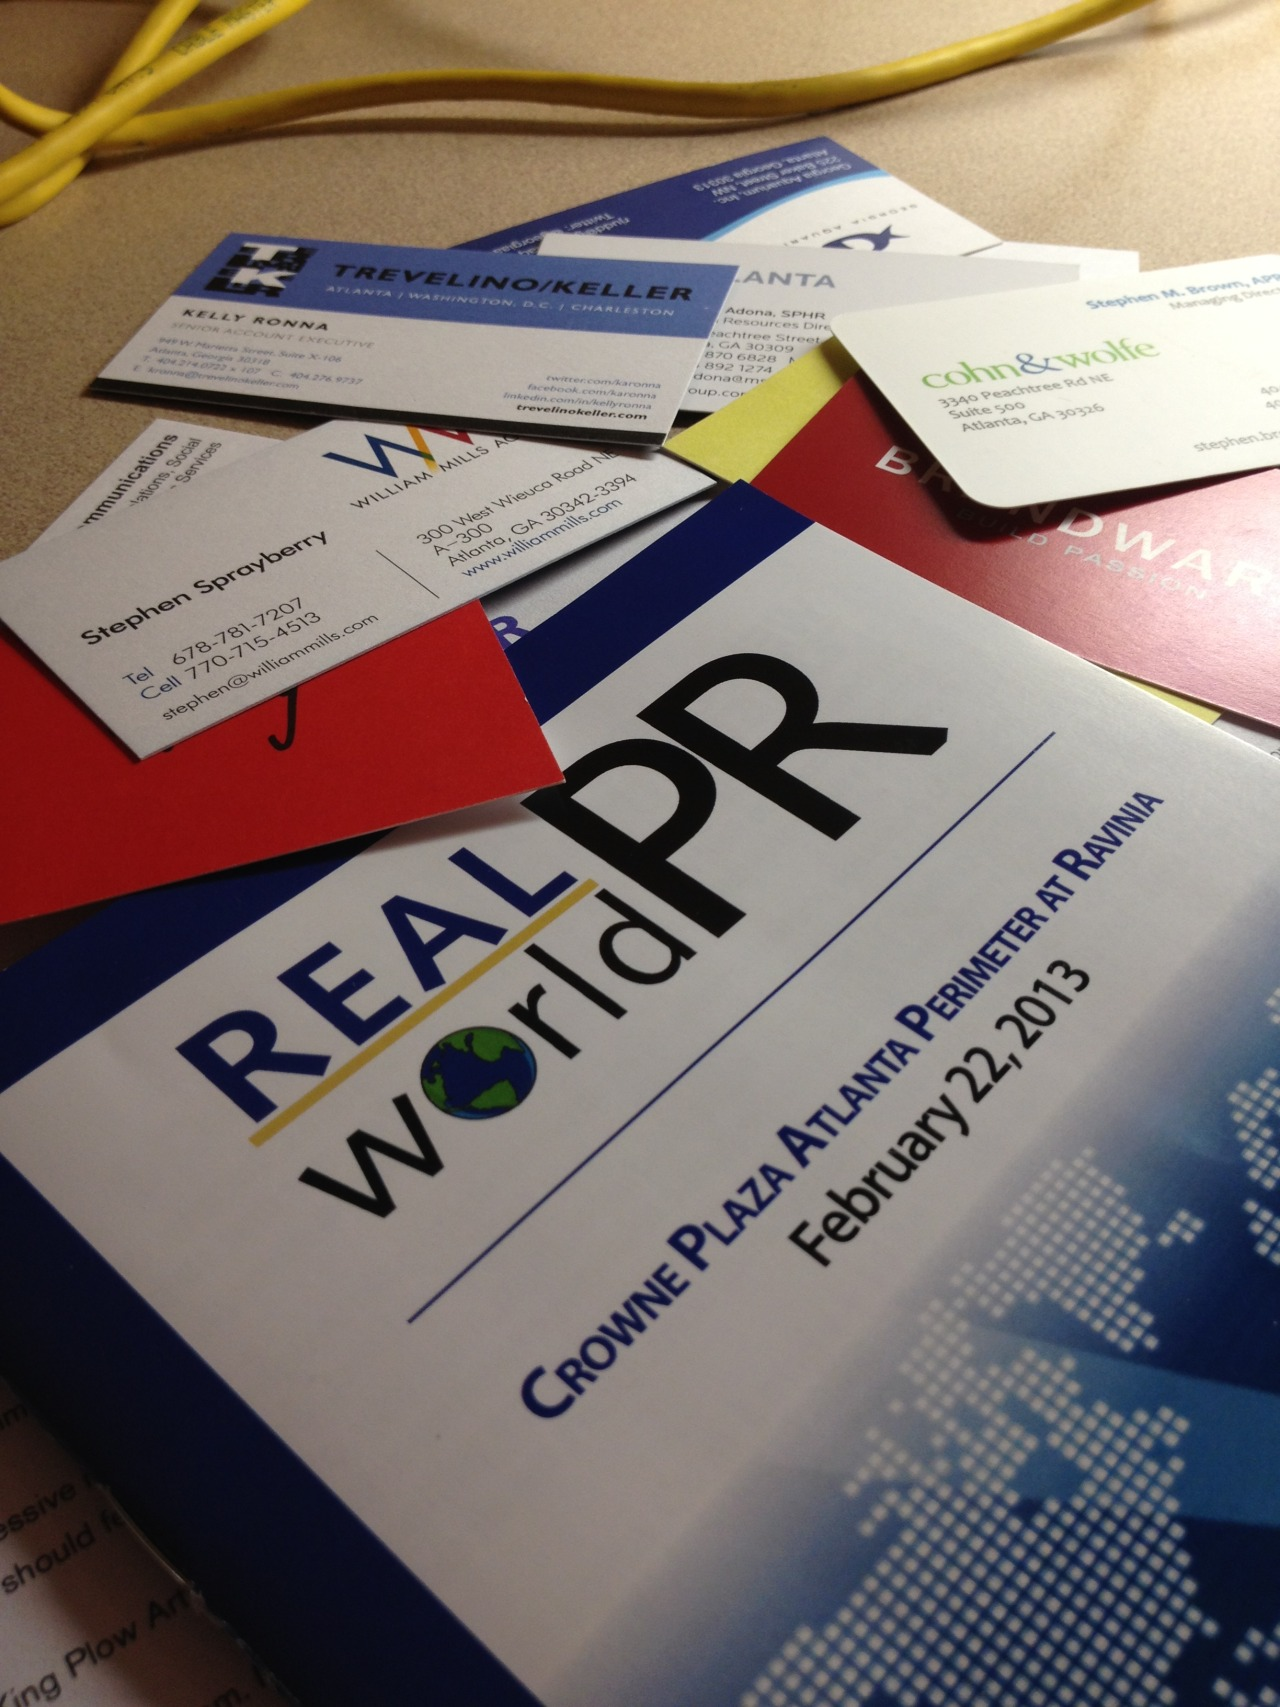 What a great weekend at Real World PR in Atlanta this weekend. I shook a lot of hands and learned valuable lessons about the world of public relations. Check out my Twitter @LianaTMiller for some of my tweets from the conference.